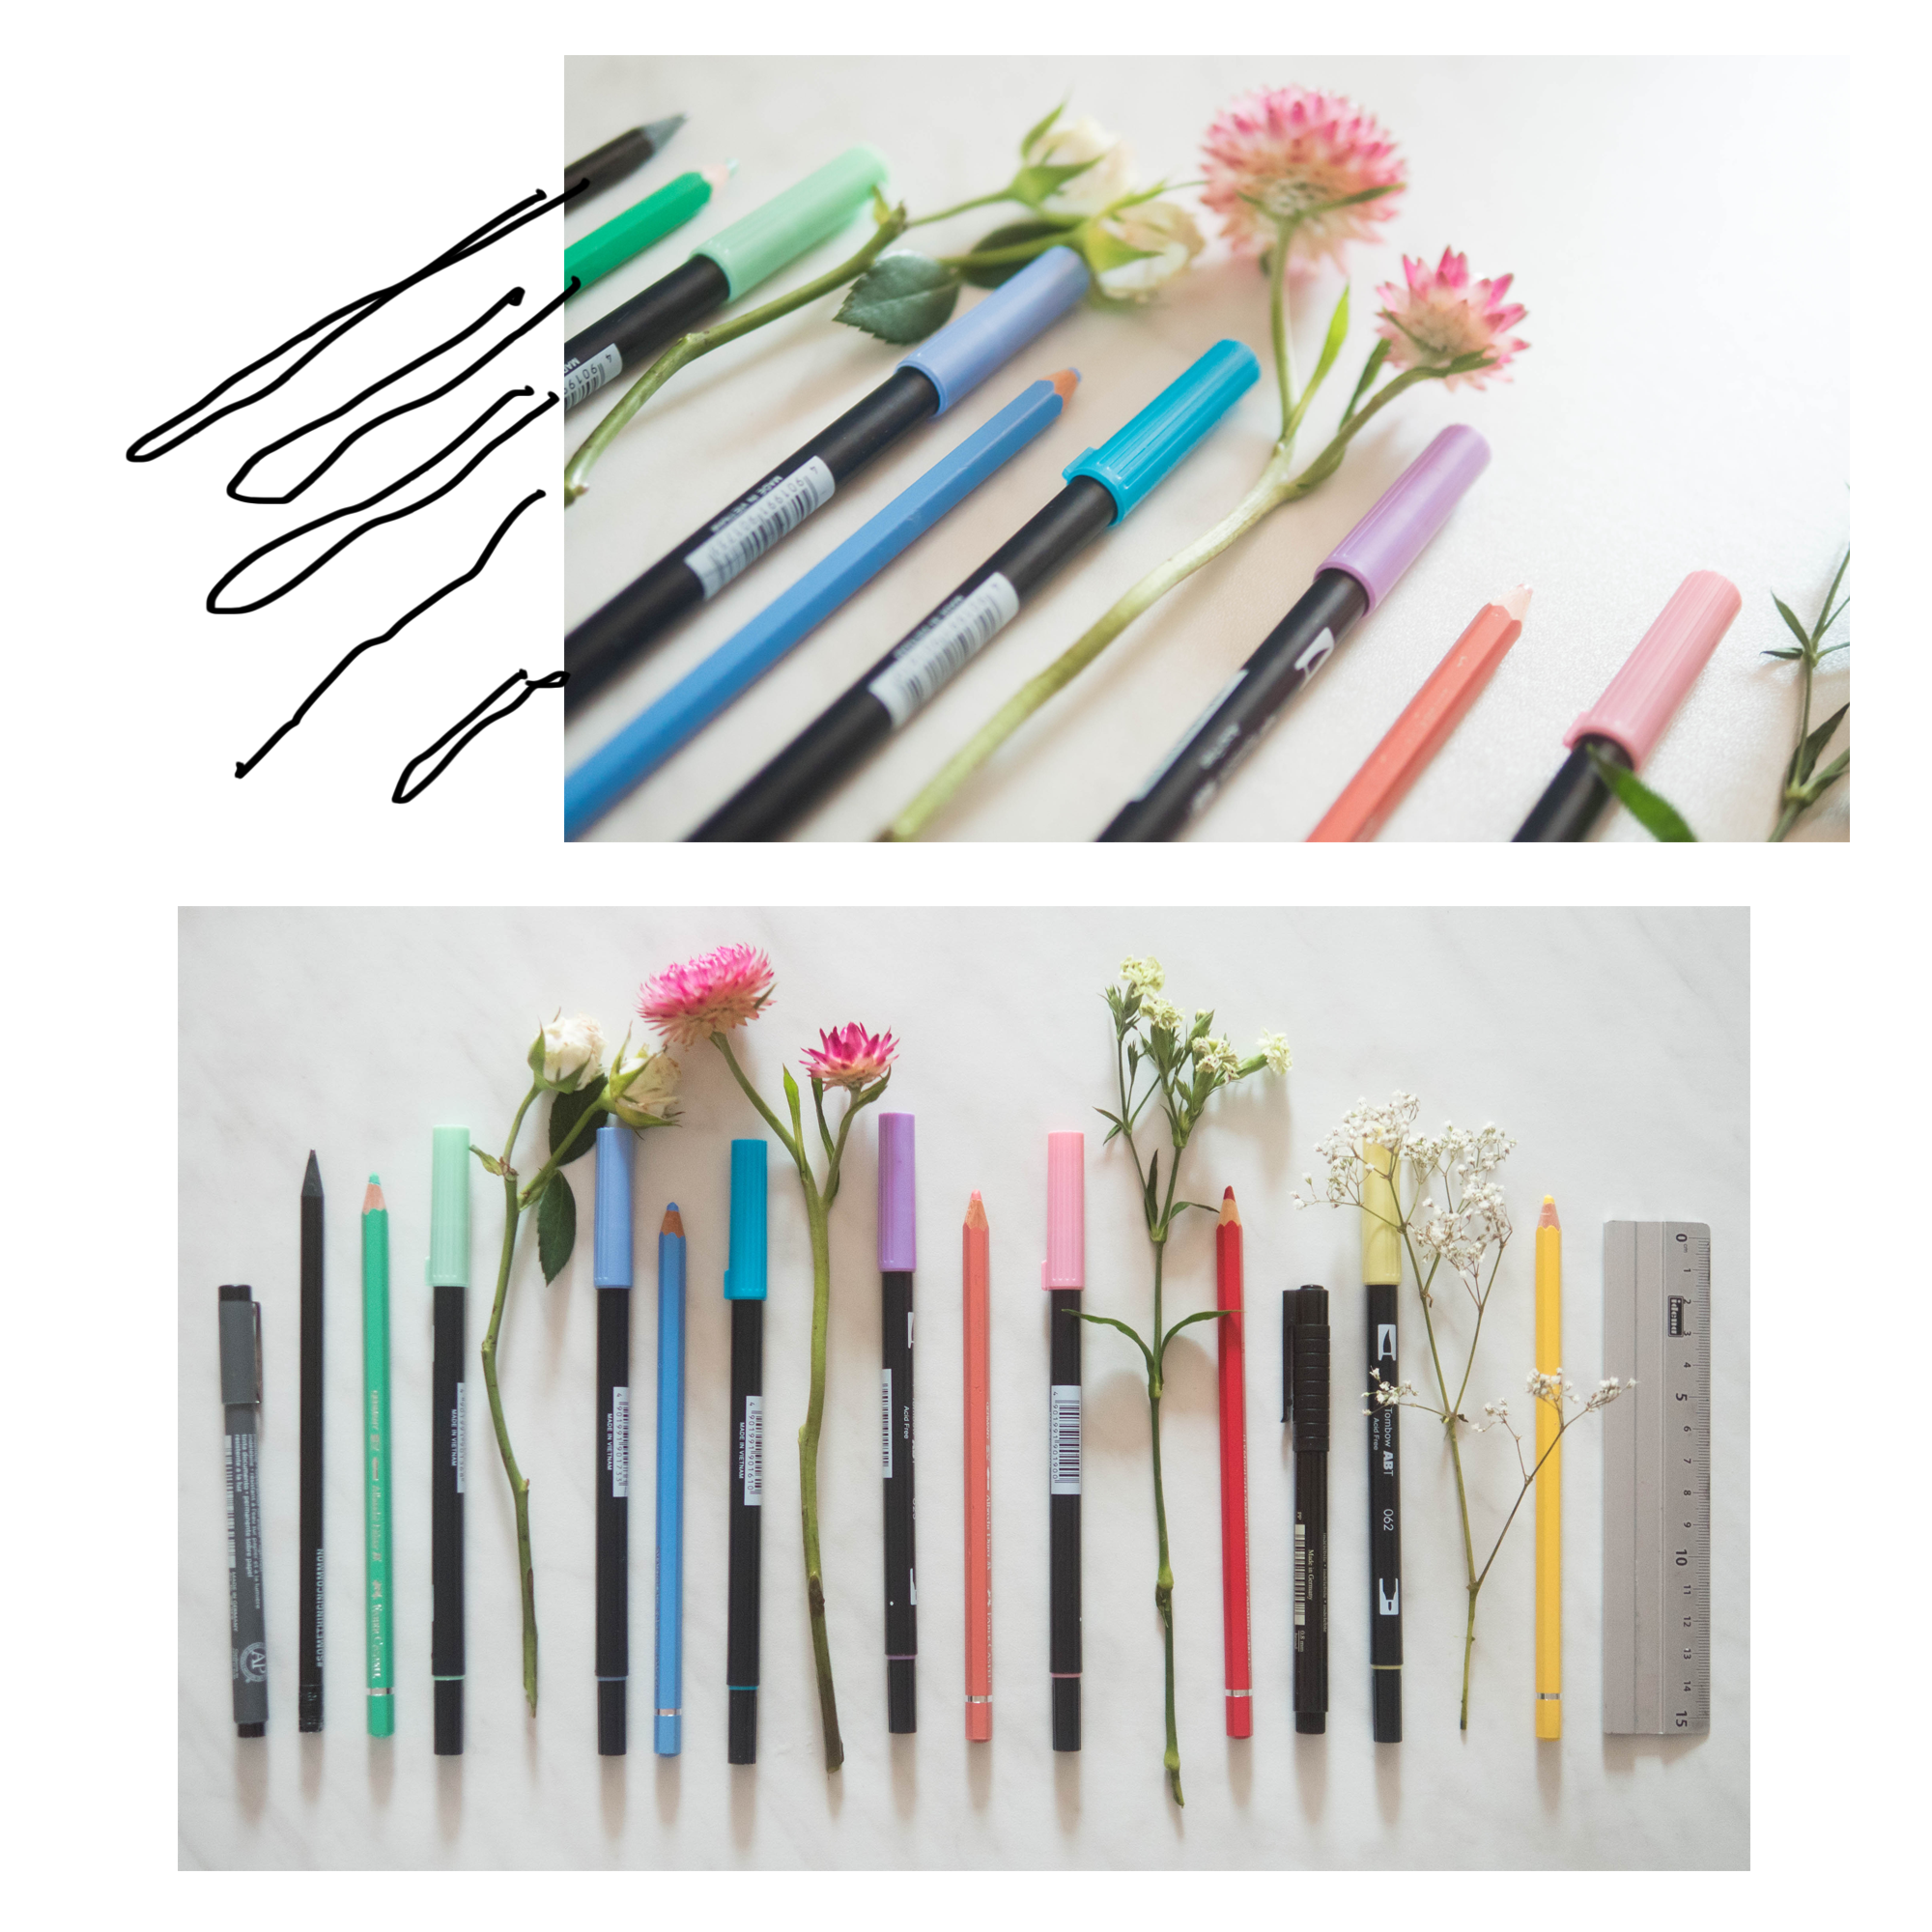 Some Bullet Journal inspiration and layout ideas. This time: My Pencil Collection! #bulletjournal #ideas #layout #inspiration